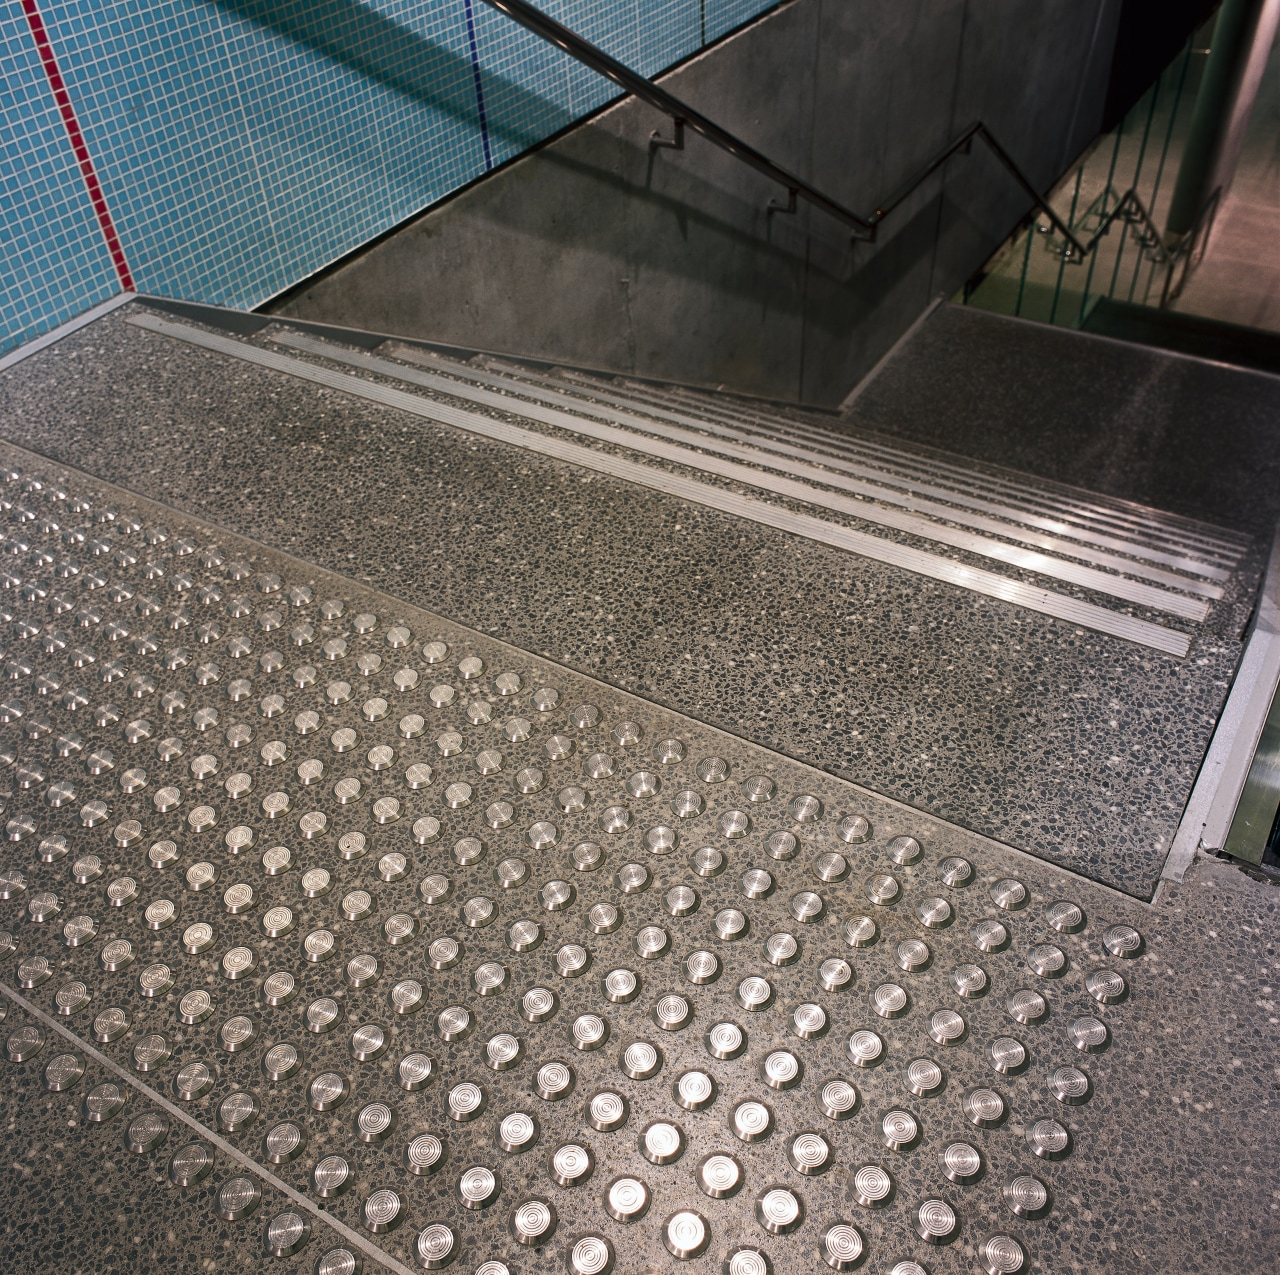 Auckland's Britomart Transport Centre. The stainless steel tactile architecture, asphalt, daylighting, floor, flooring, line, mesh, metal, road surface, steel, gray, black